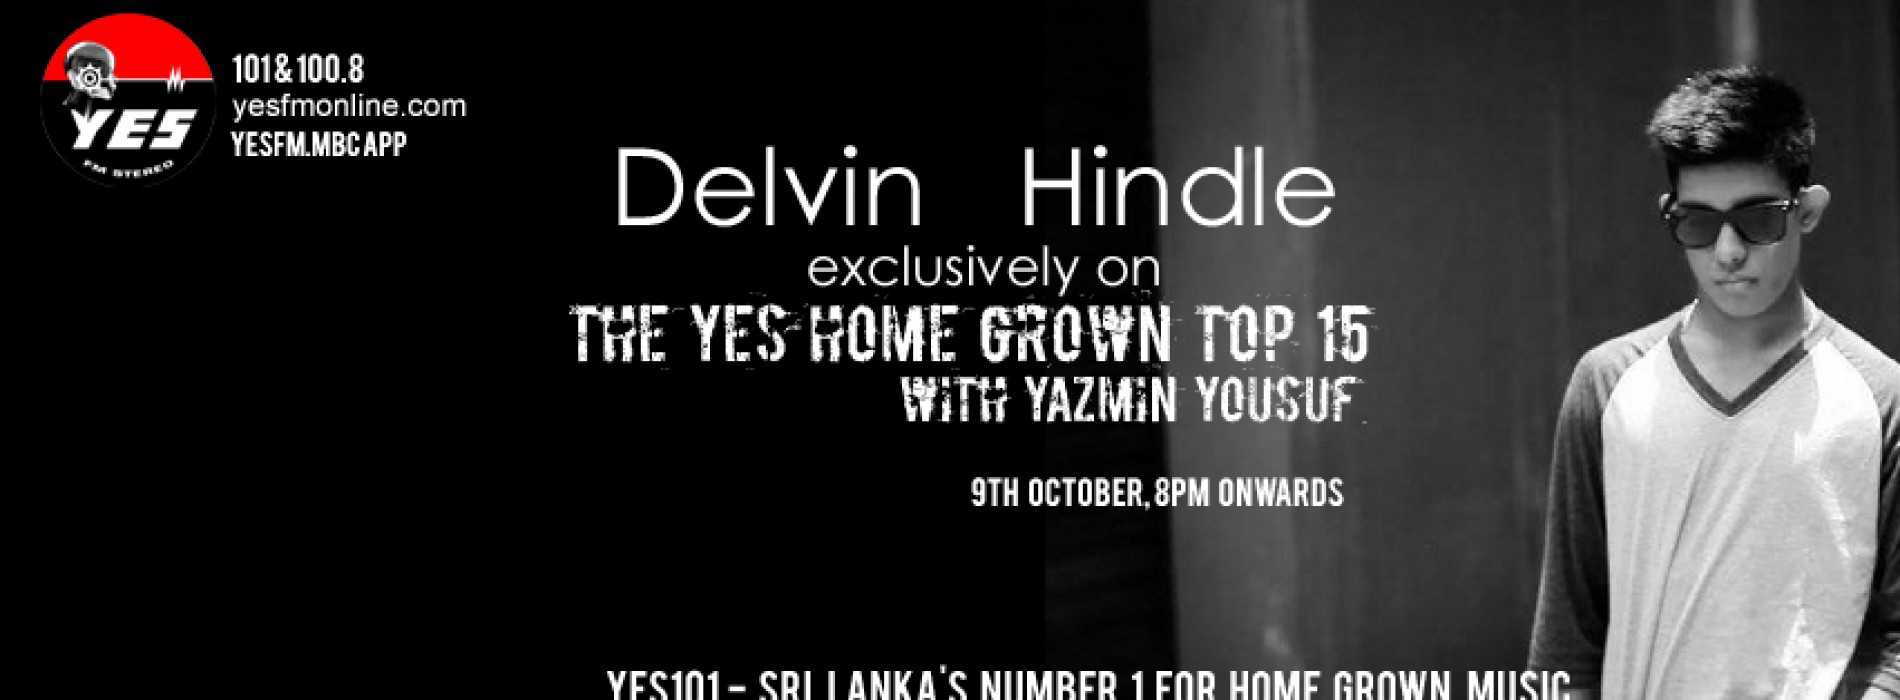 Delvin Hindle On The YES Home Grown Top 15